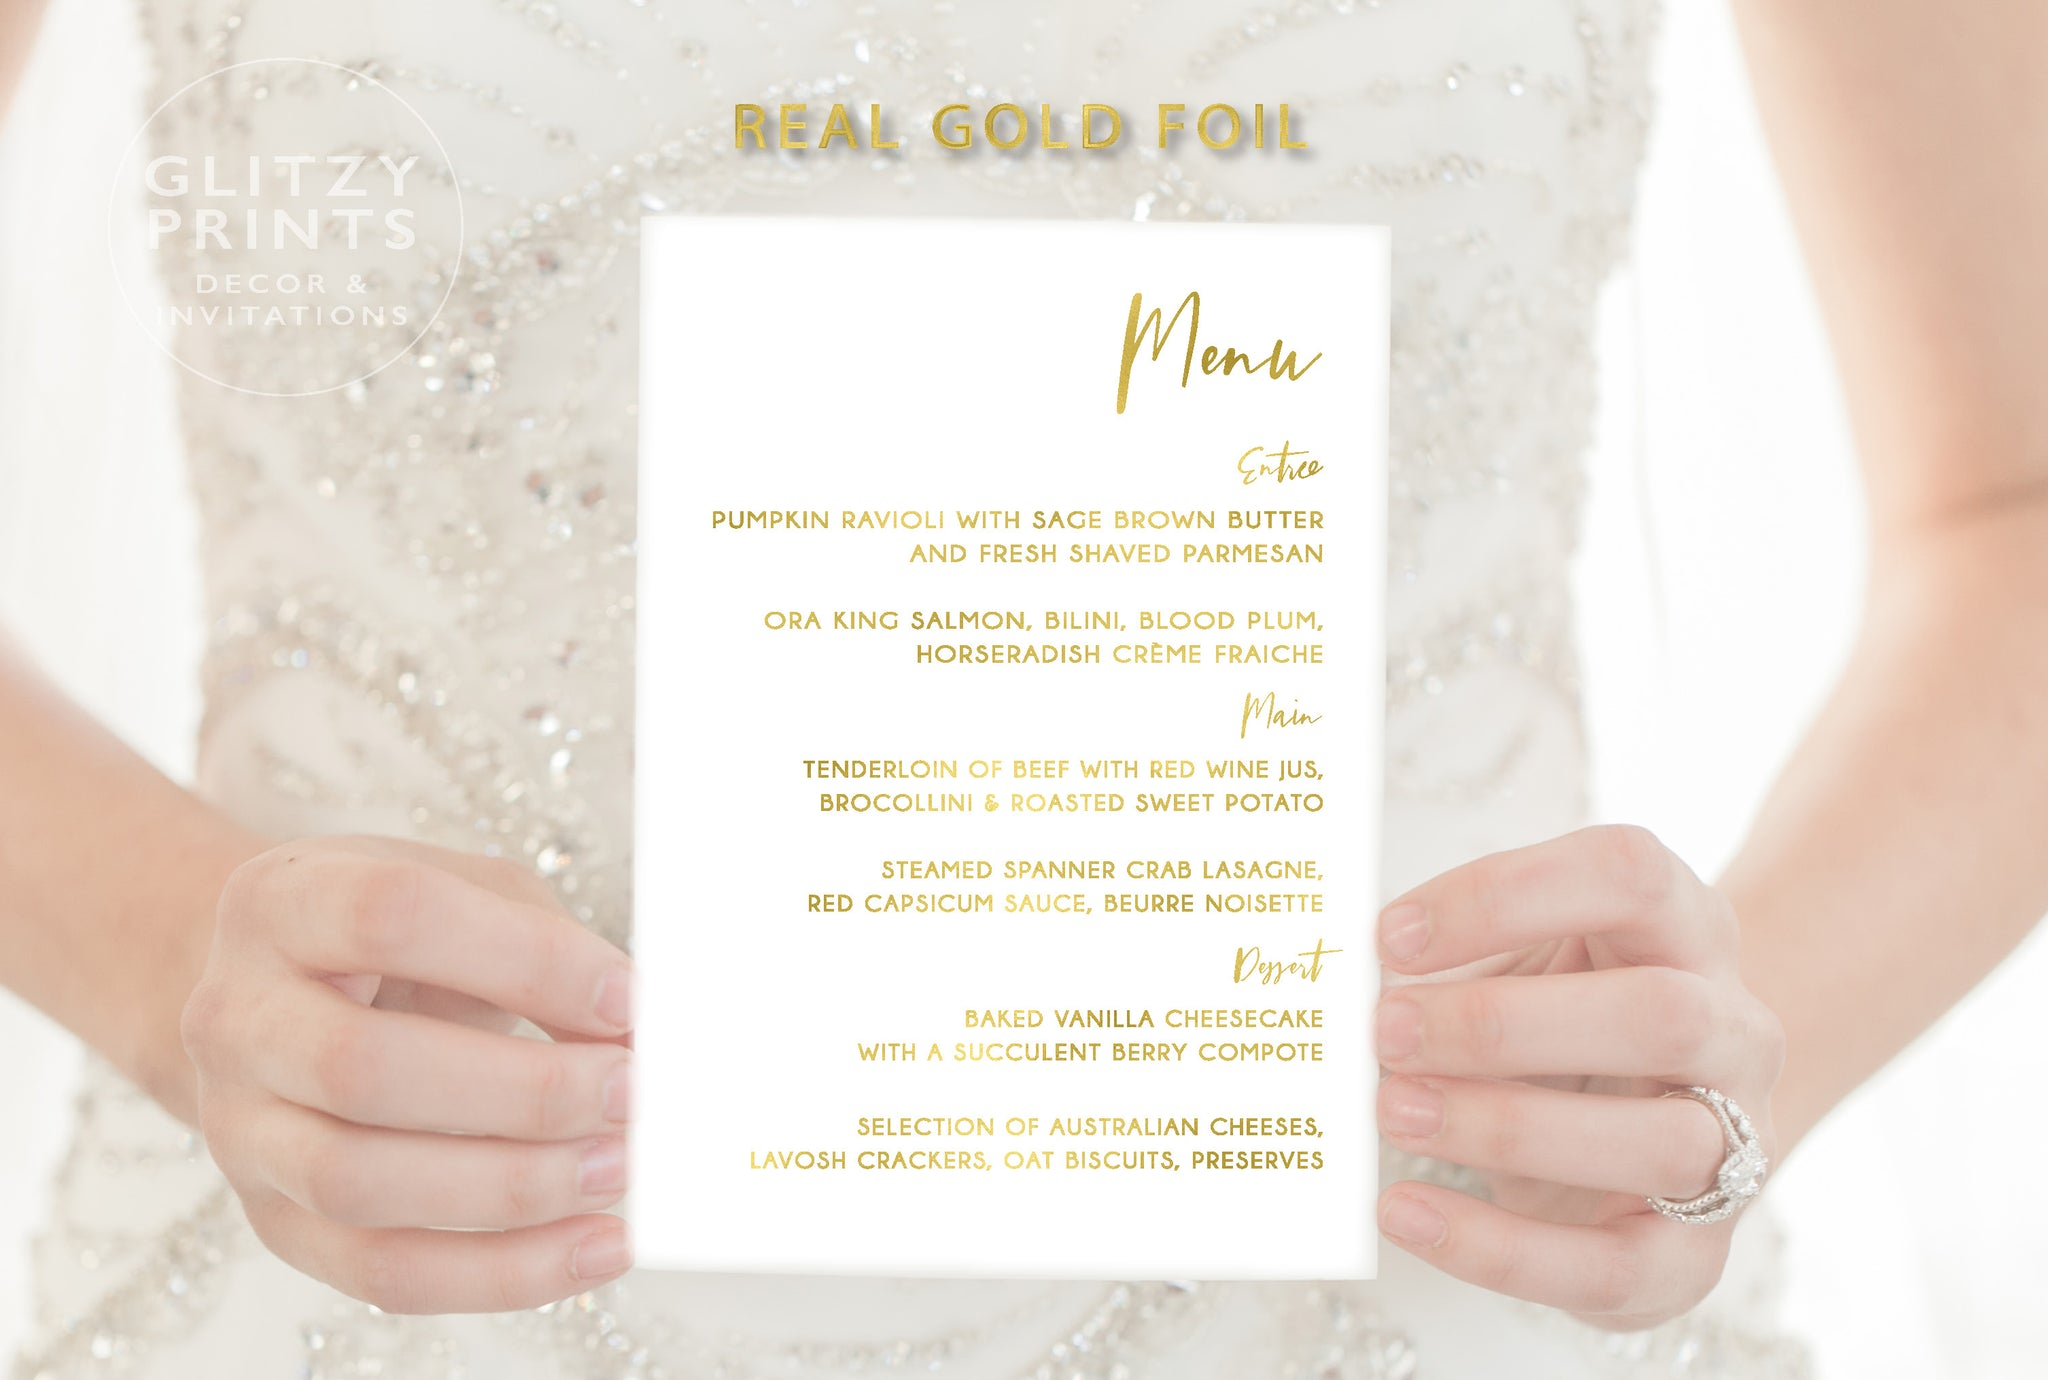 Wedding Menu Cards in Real Gold Foil A5 size – Glitzy Prints